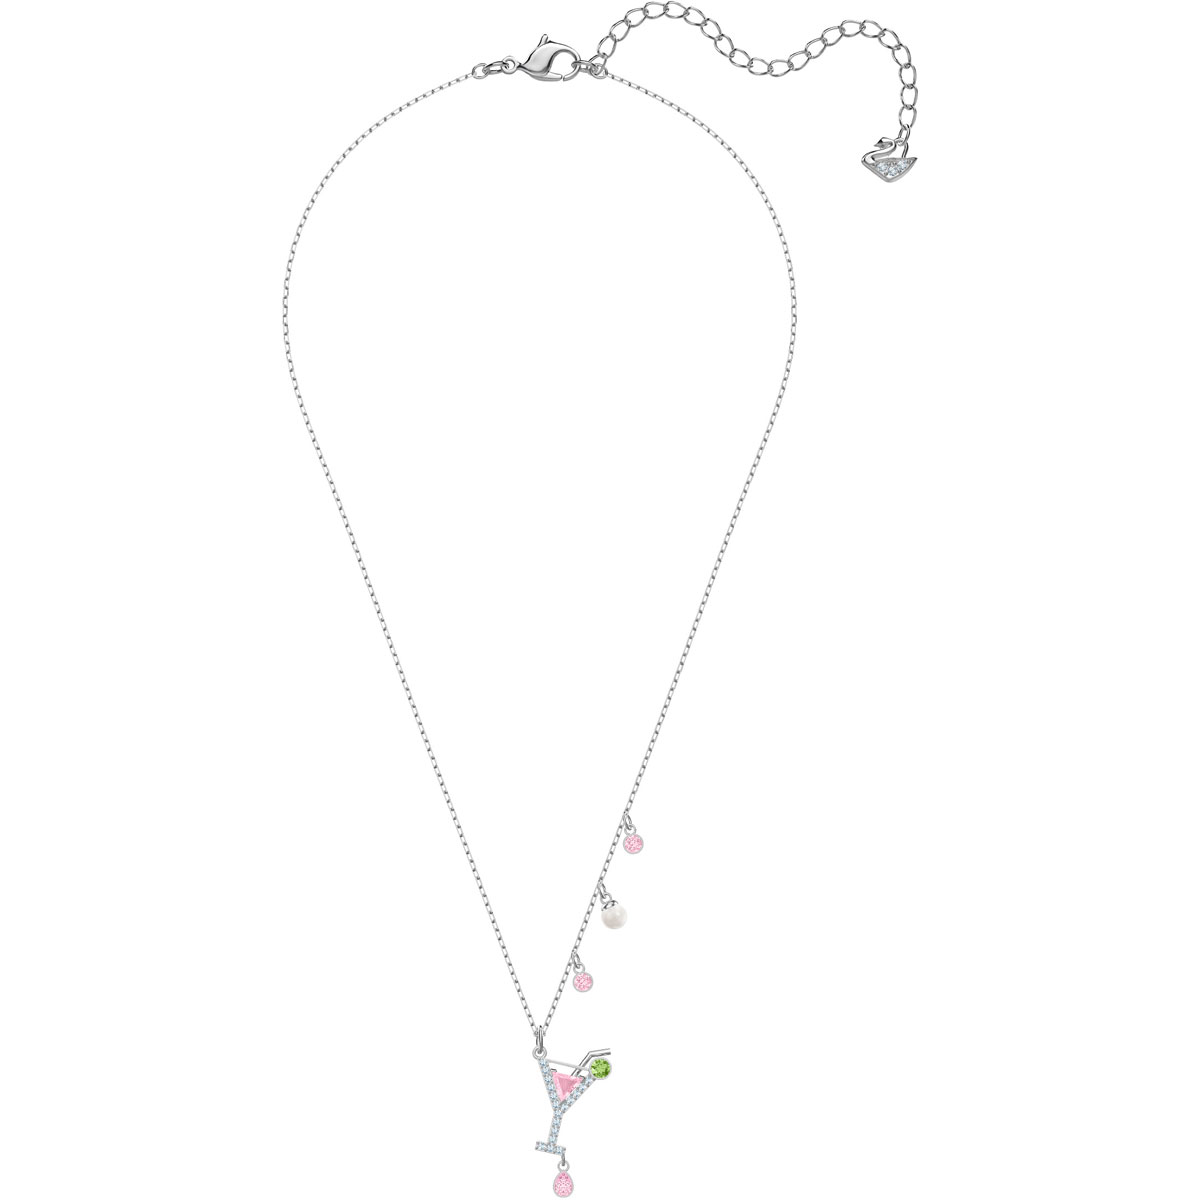 Swarovski Pendente No Regrets Cocktail, multicolore, placcatura rodio 5443012